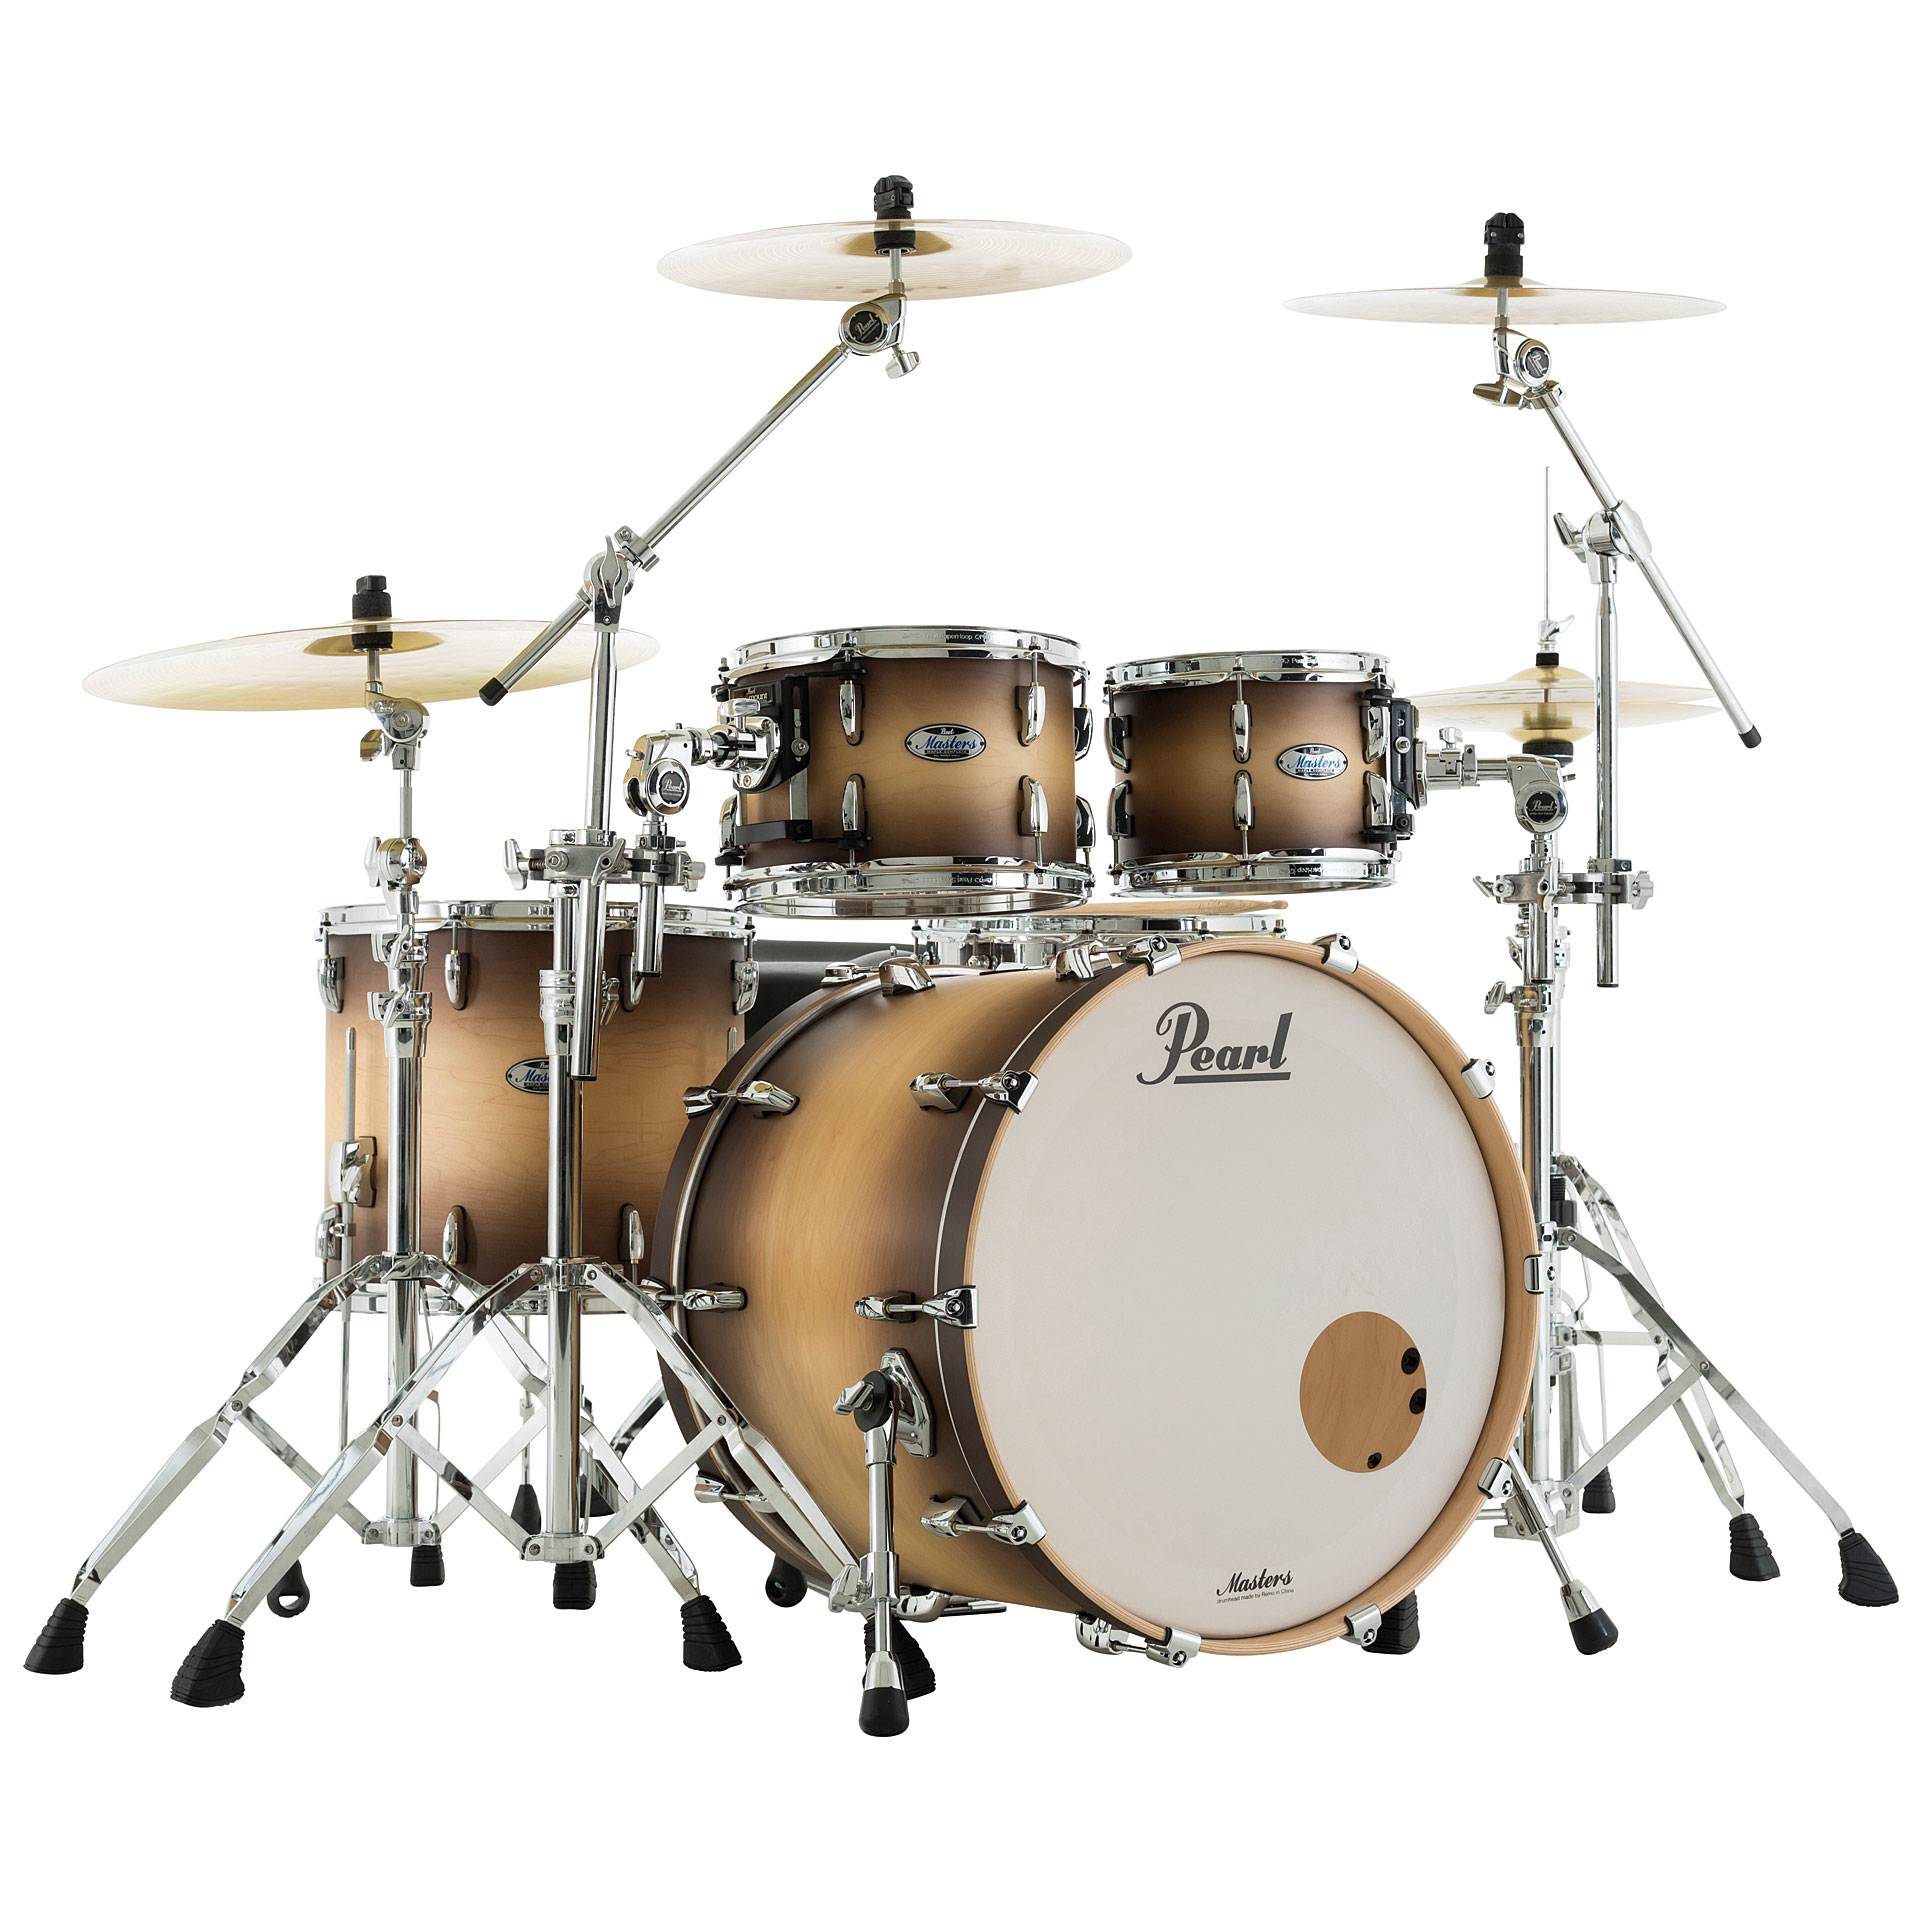 Erfahrung Synonym Pearl Masters Maple Complete 22 Quot Satin Natural Burst